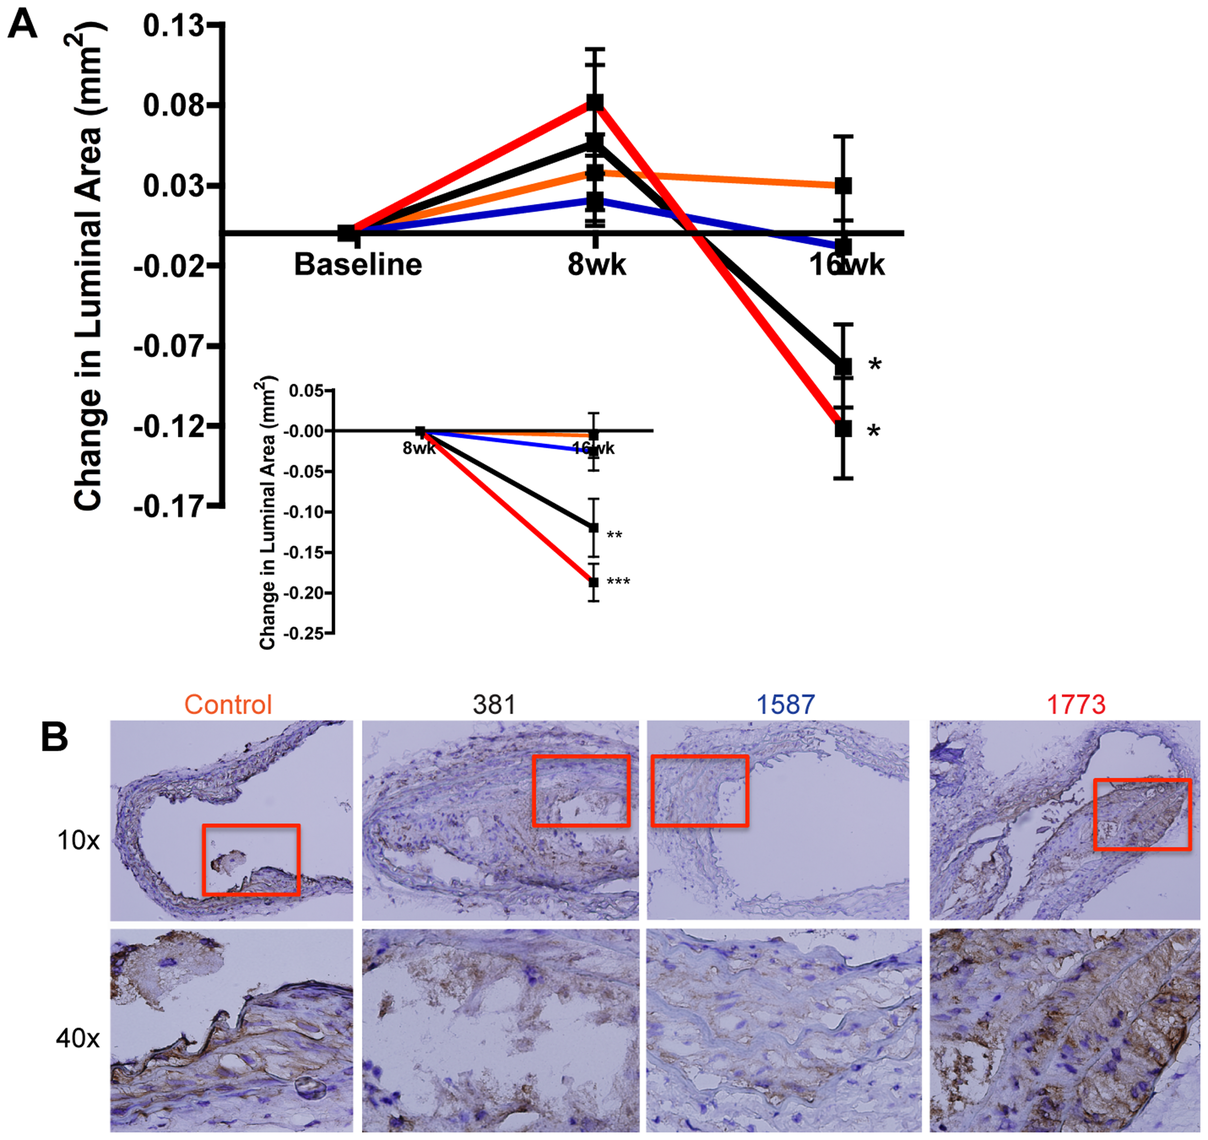 Expression of immunologically silent or antagonistic lipid A structures exacerbates atherosclerotic plaque progression in the innominate artery.